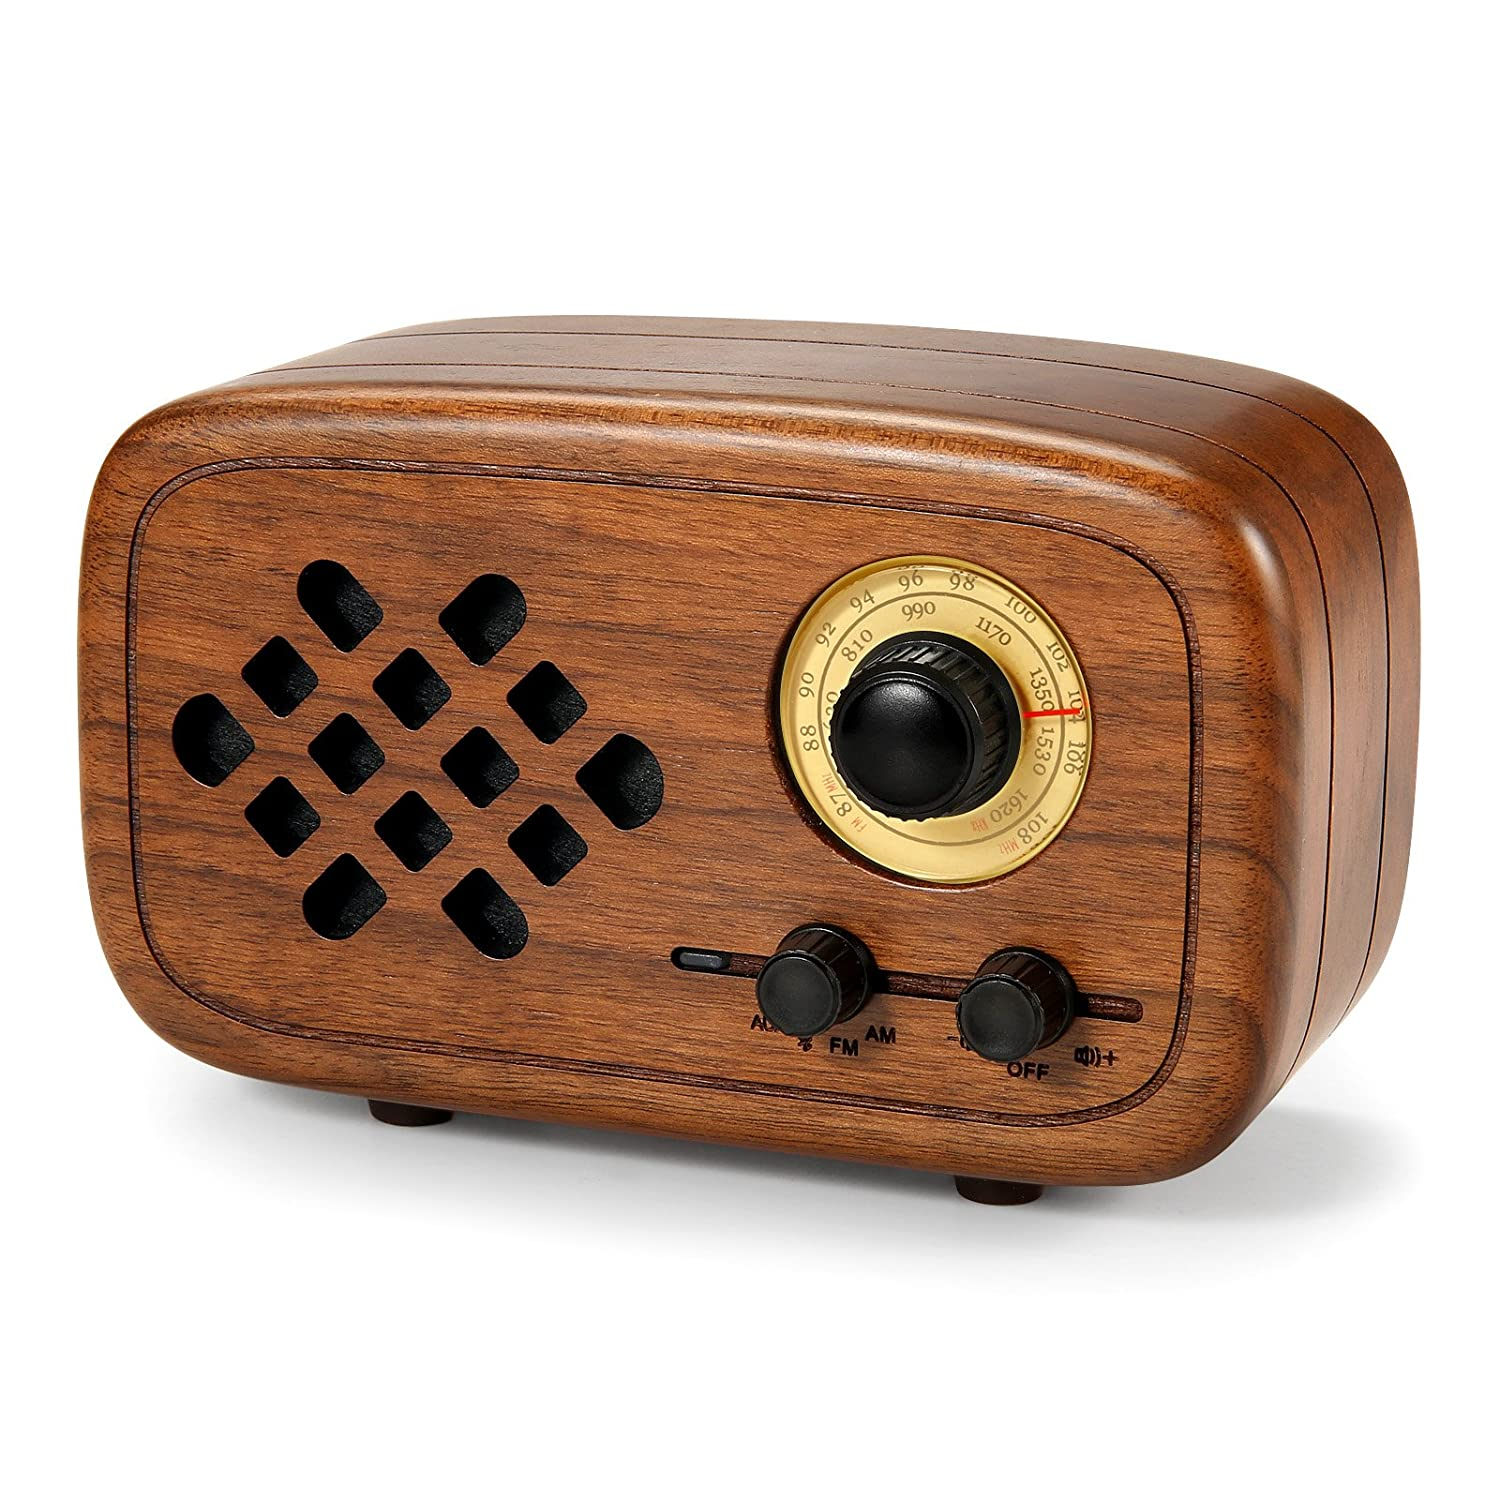 Rerii Handmade Walnut Wood Portable Bluetooth Speaker, Bluetooth 4.0 Wireless Speakers with Radio FM/AM, Nature Wood Home Audio Bluetooth Speakers with Super Bass and Subwoofer RW-01